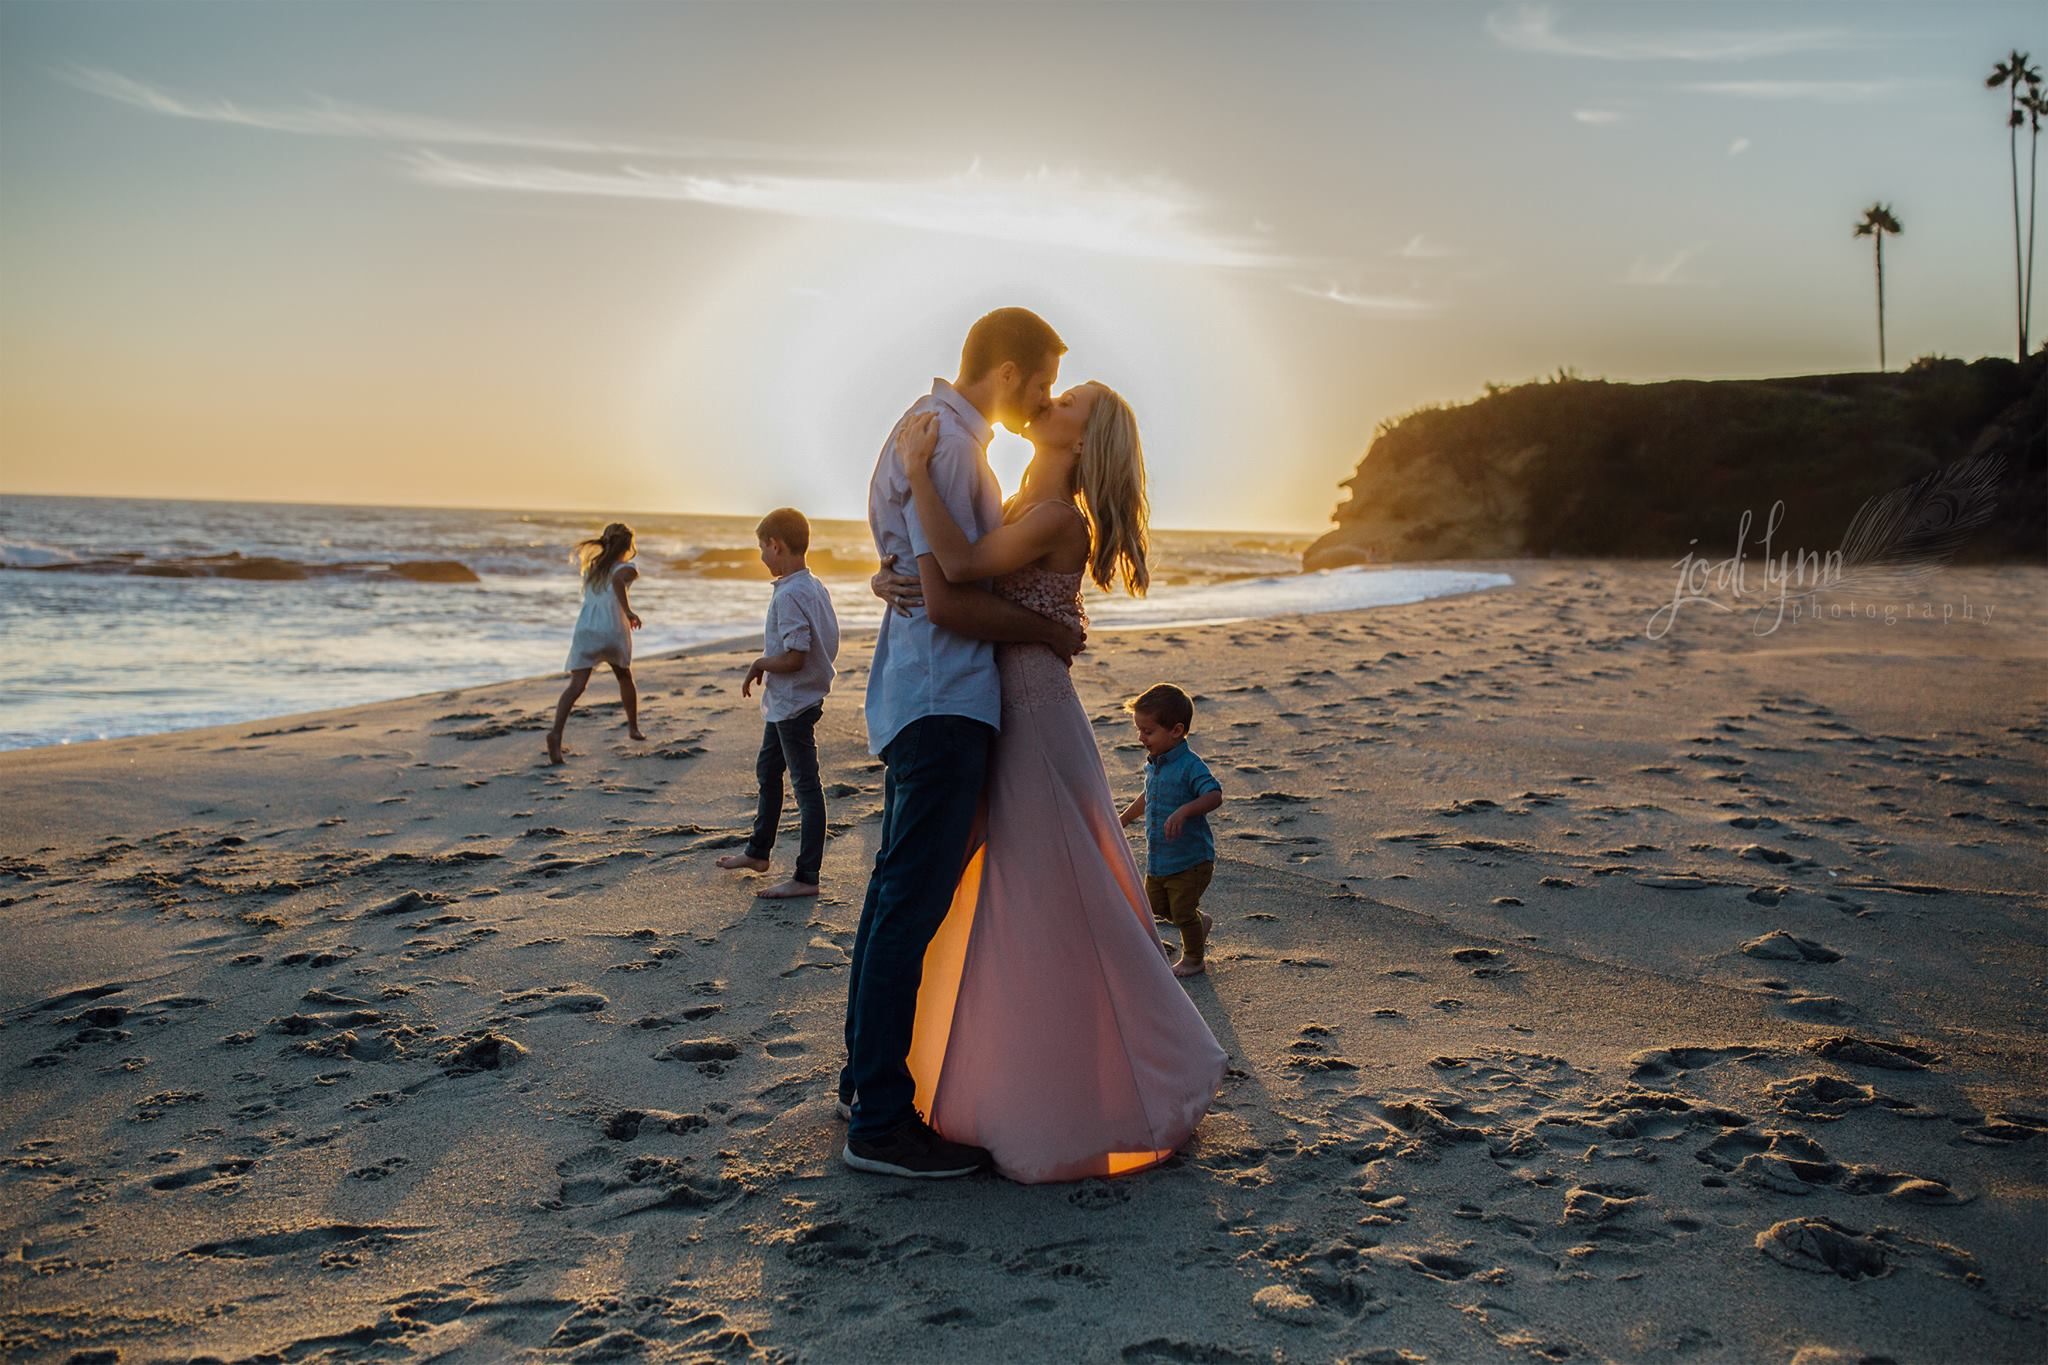 family of 5 picture ideas, beach family pictures, daily fan favorite